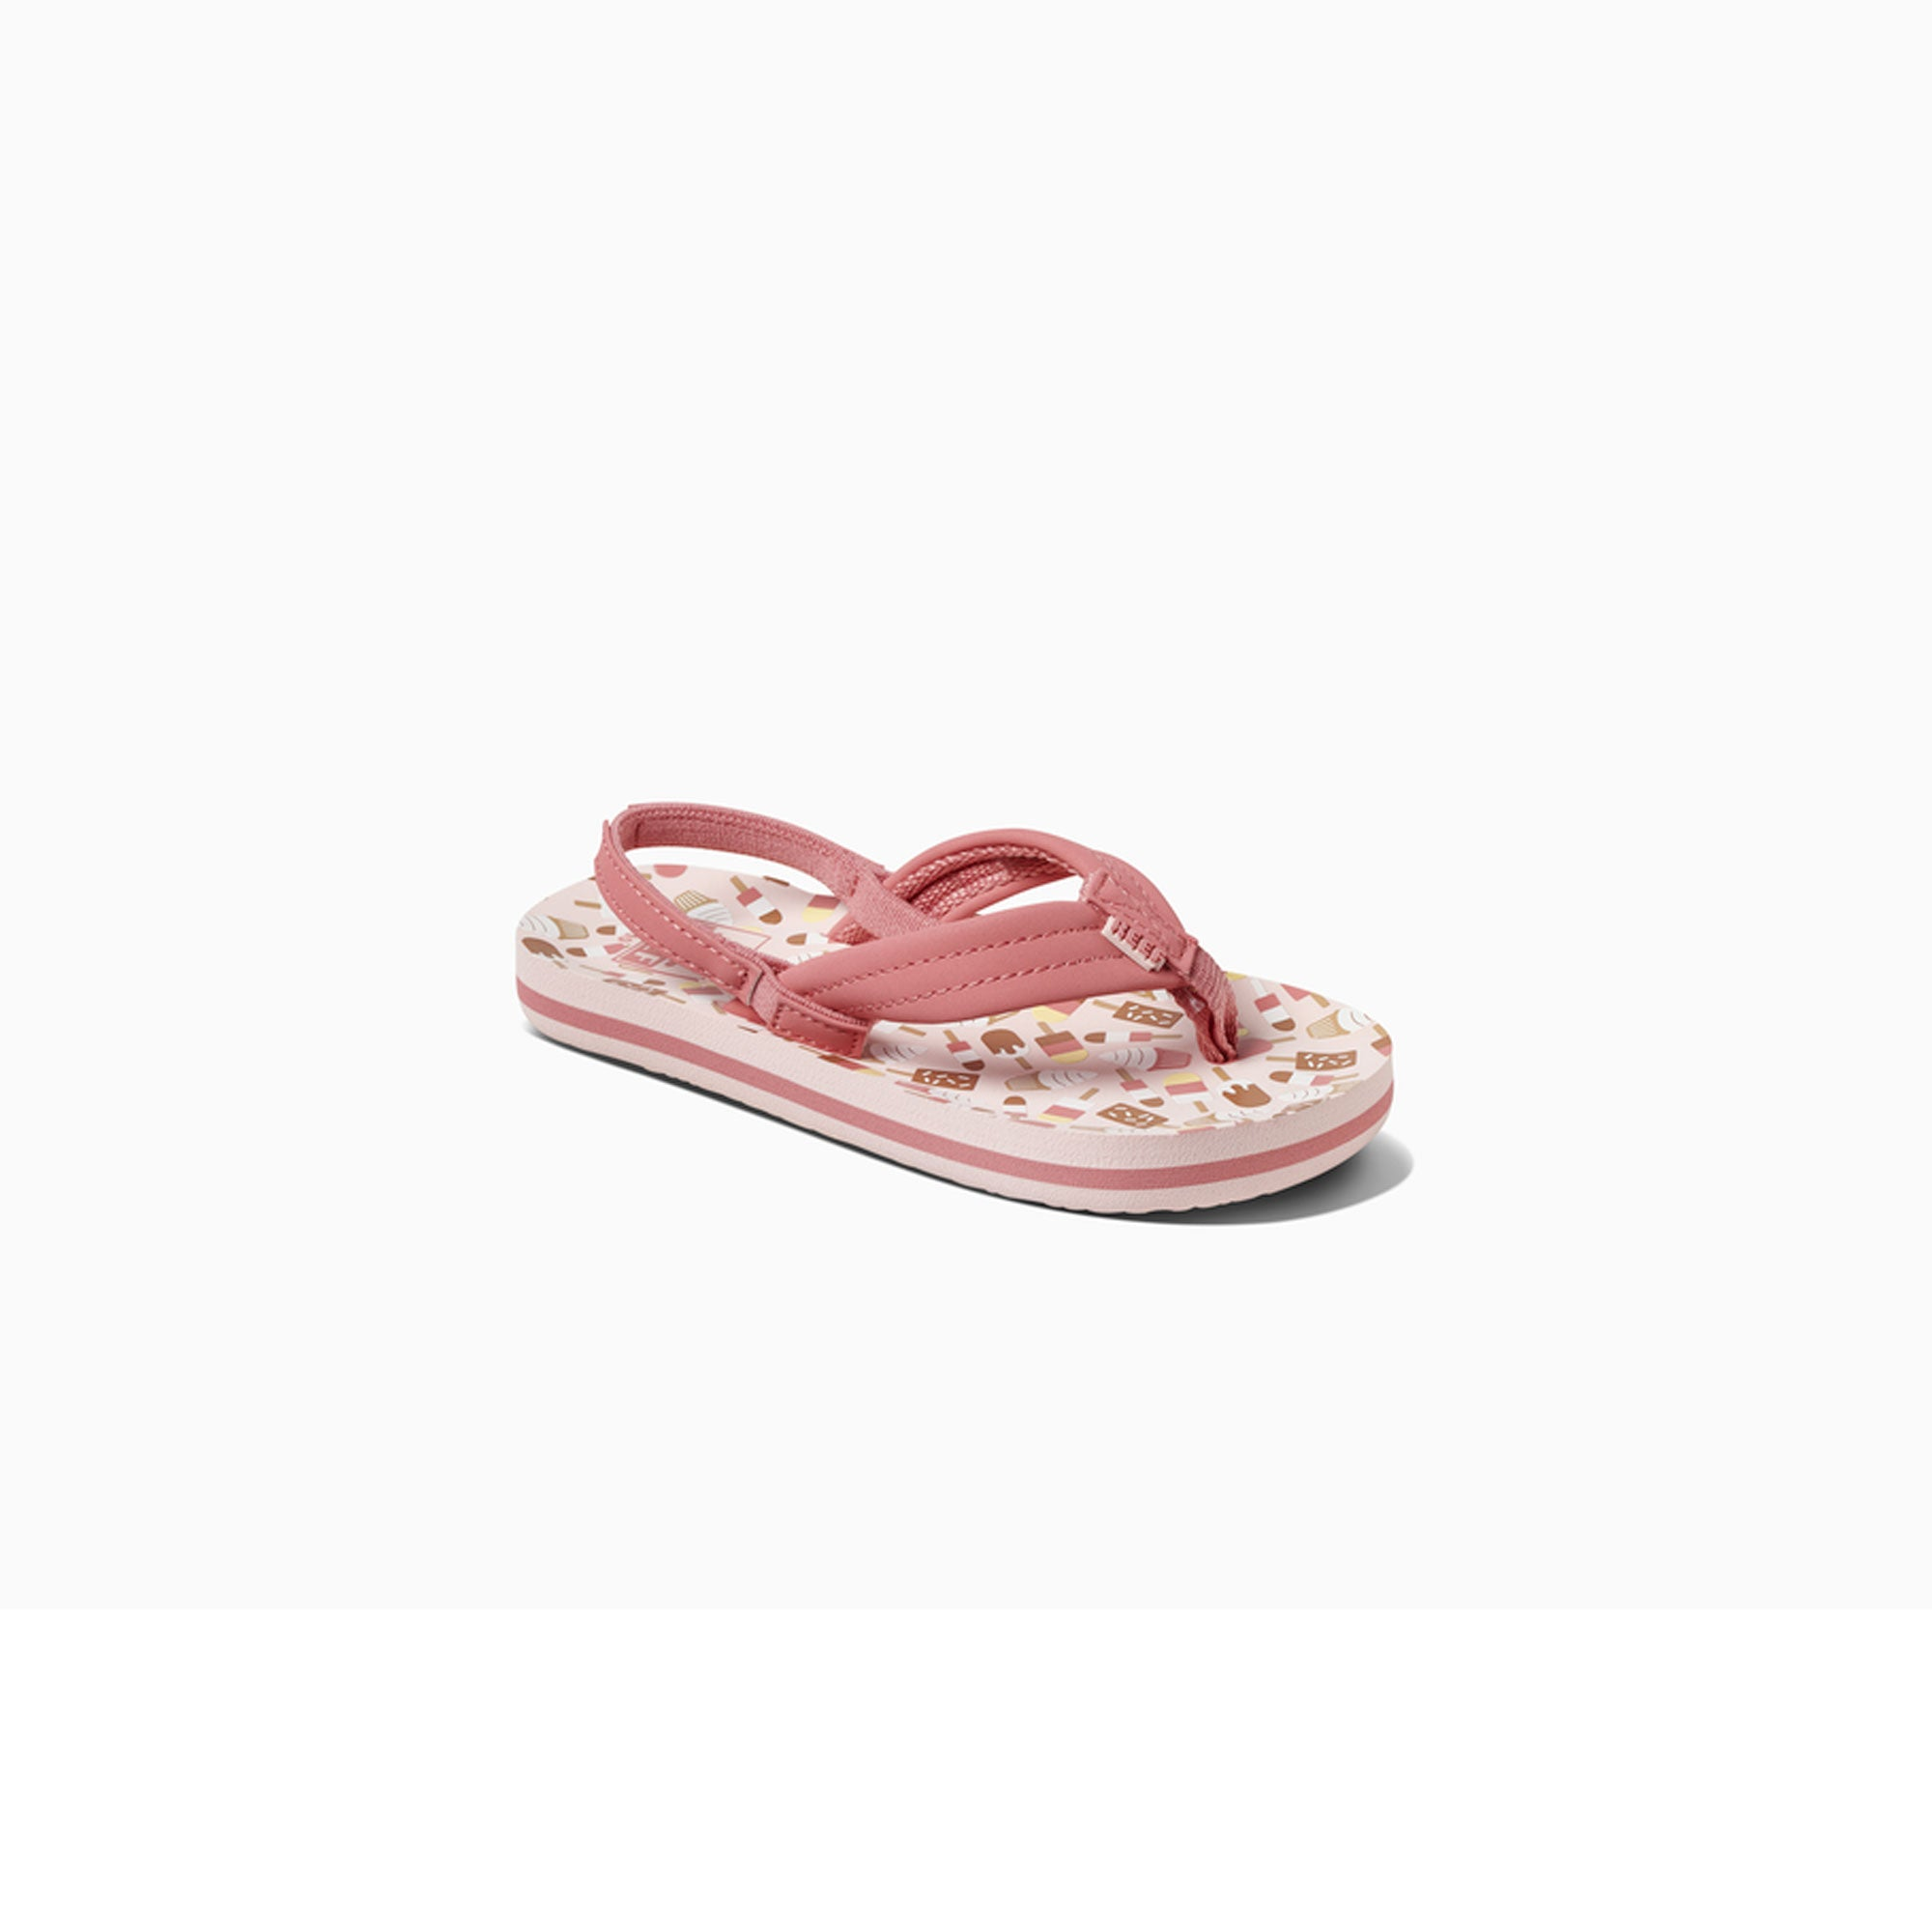 Reef Little Ahi Youth Girls Sandals - Ice Cream Truck